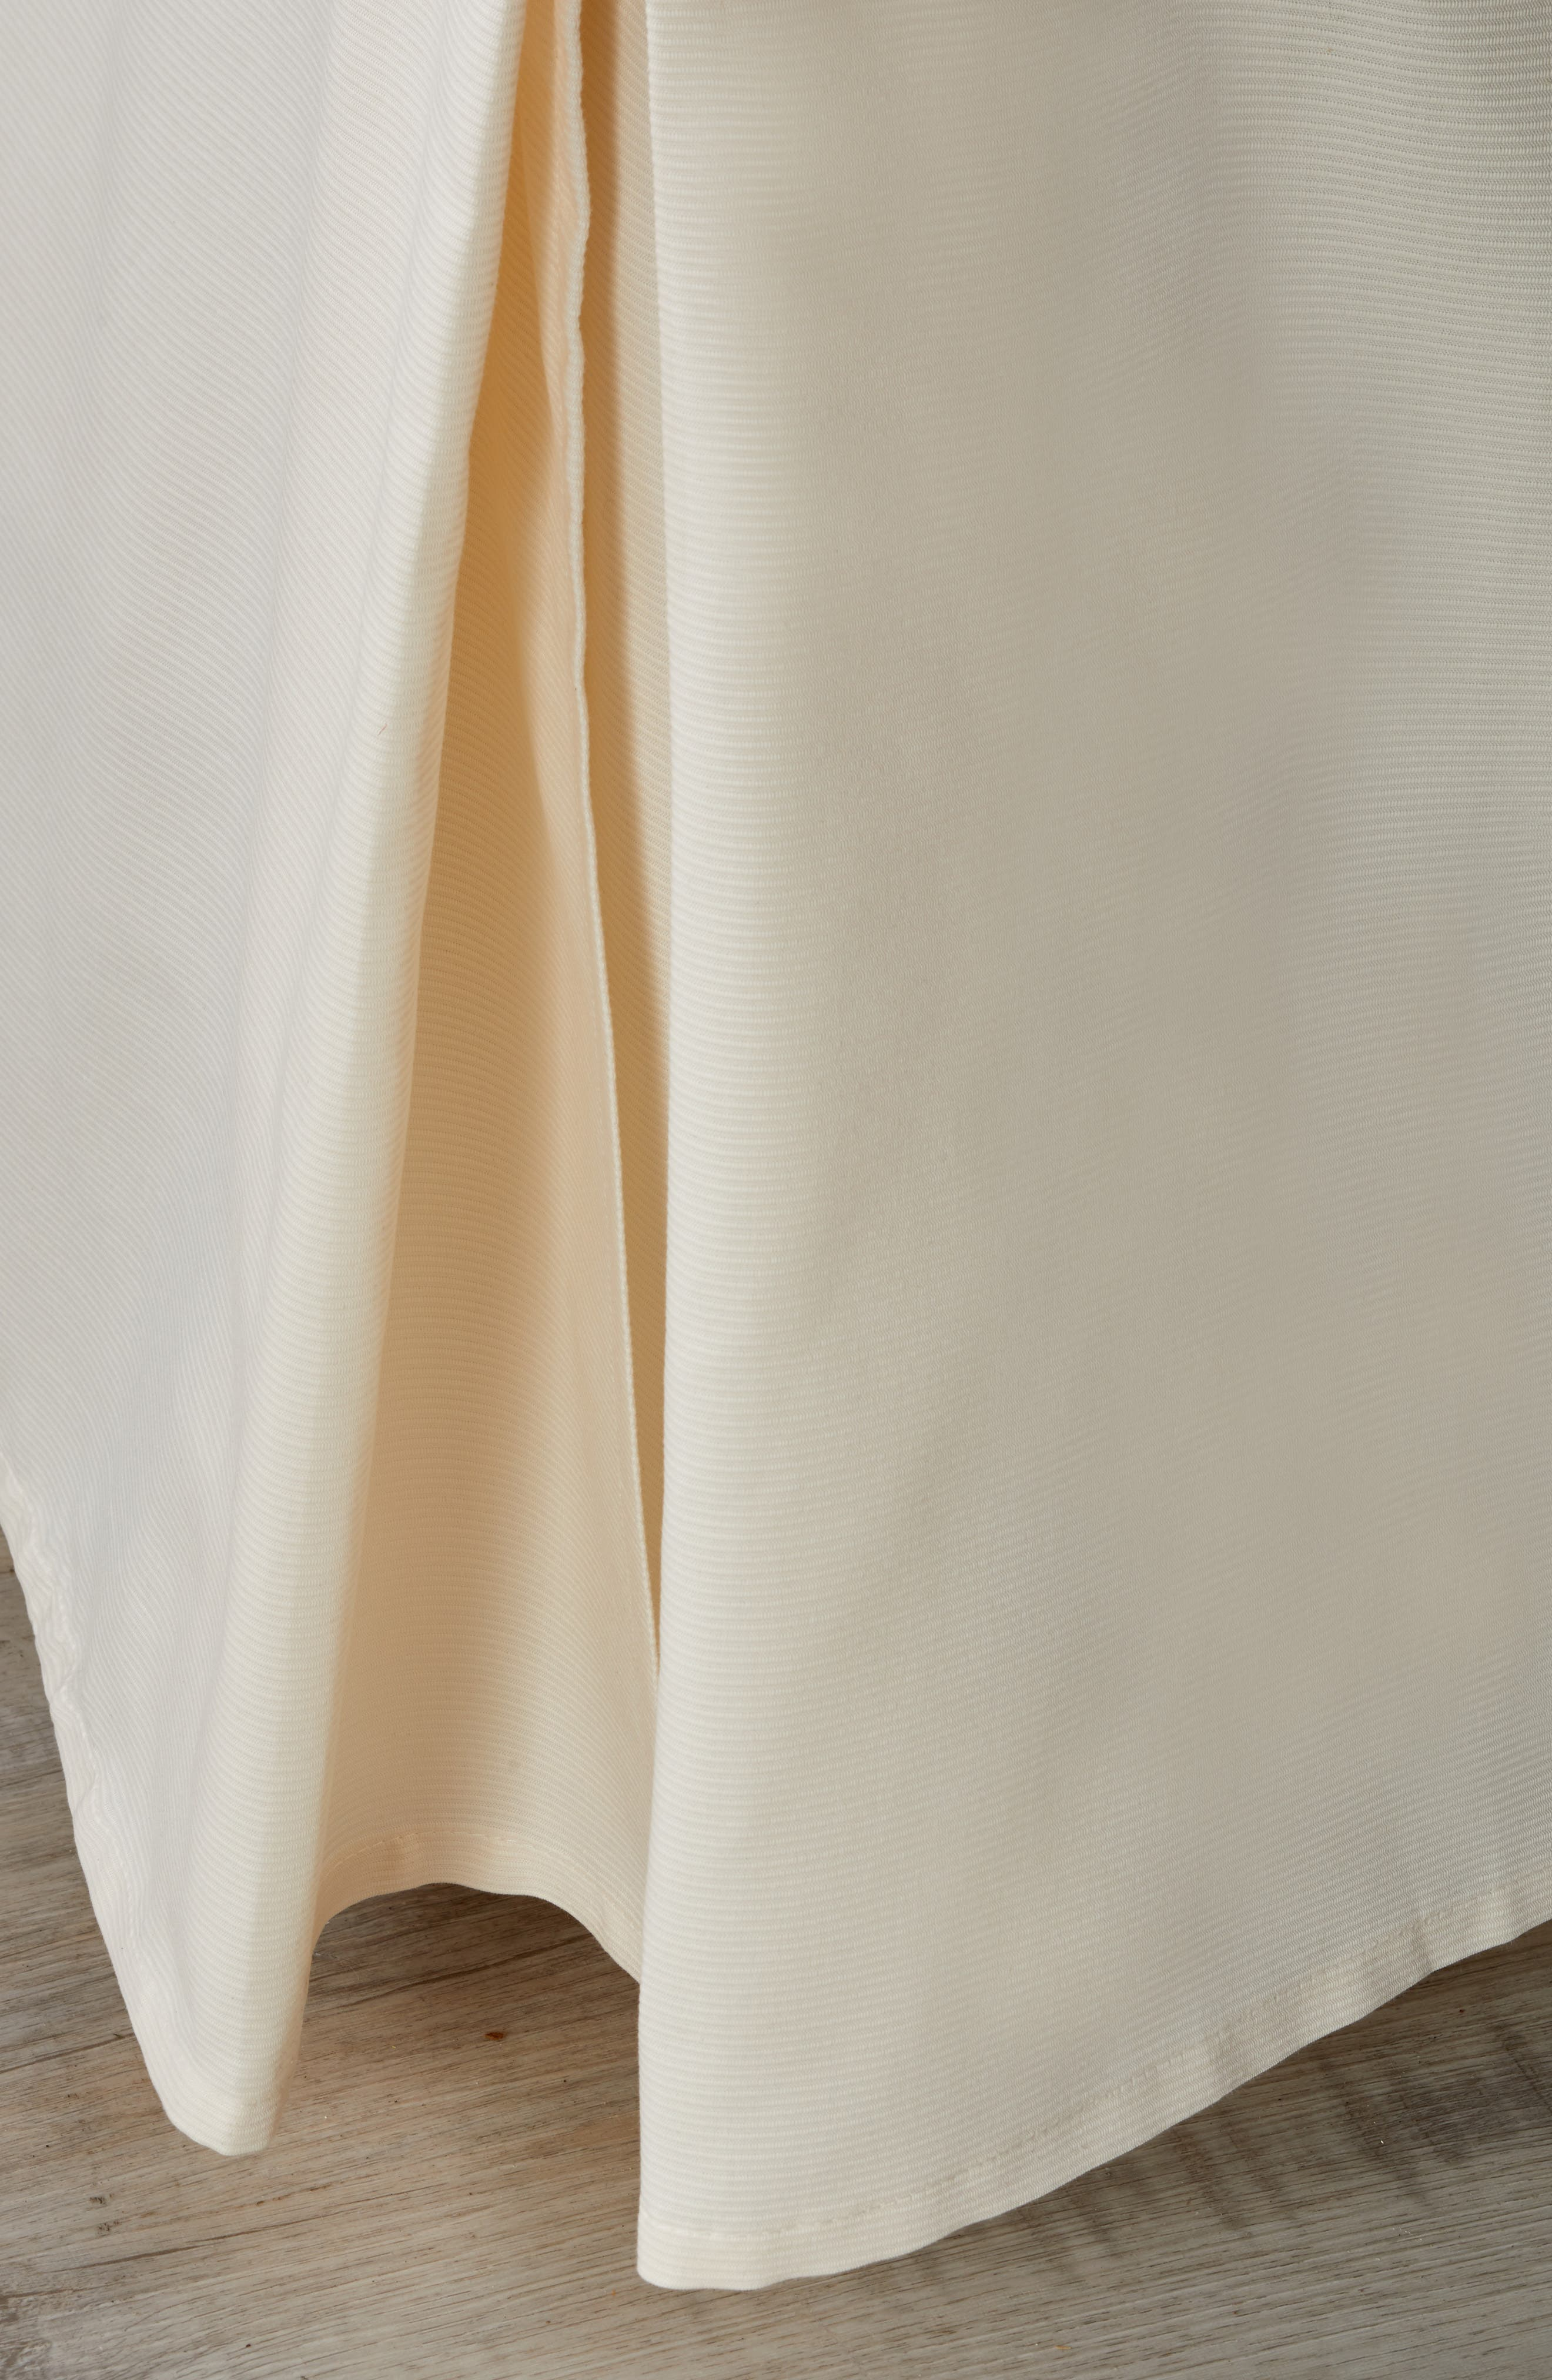 Woven Rib Bed Skirt,                         Main,                         color, Ivory